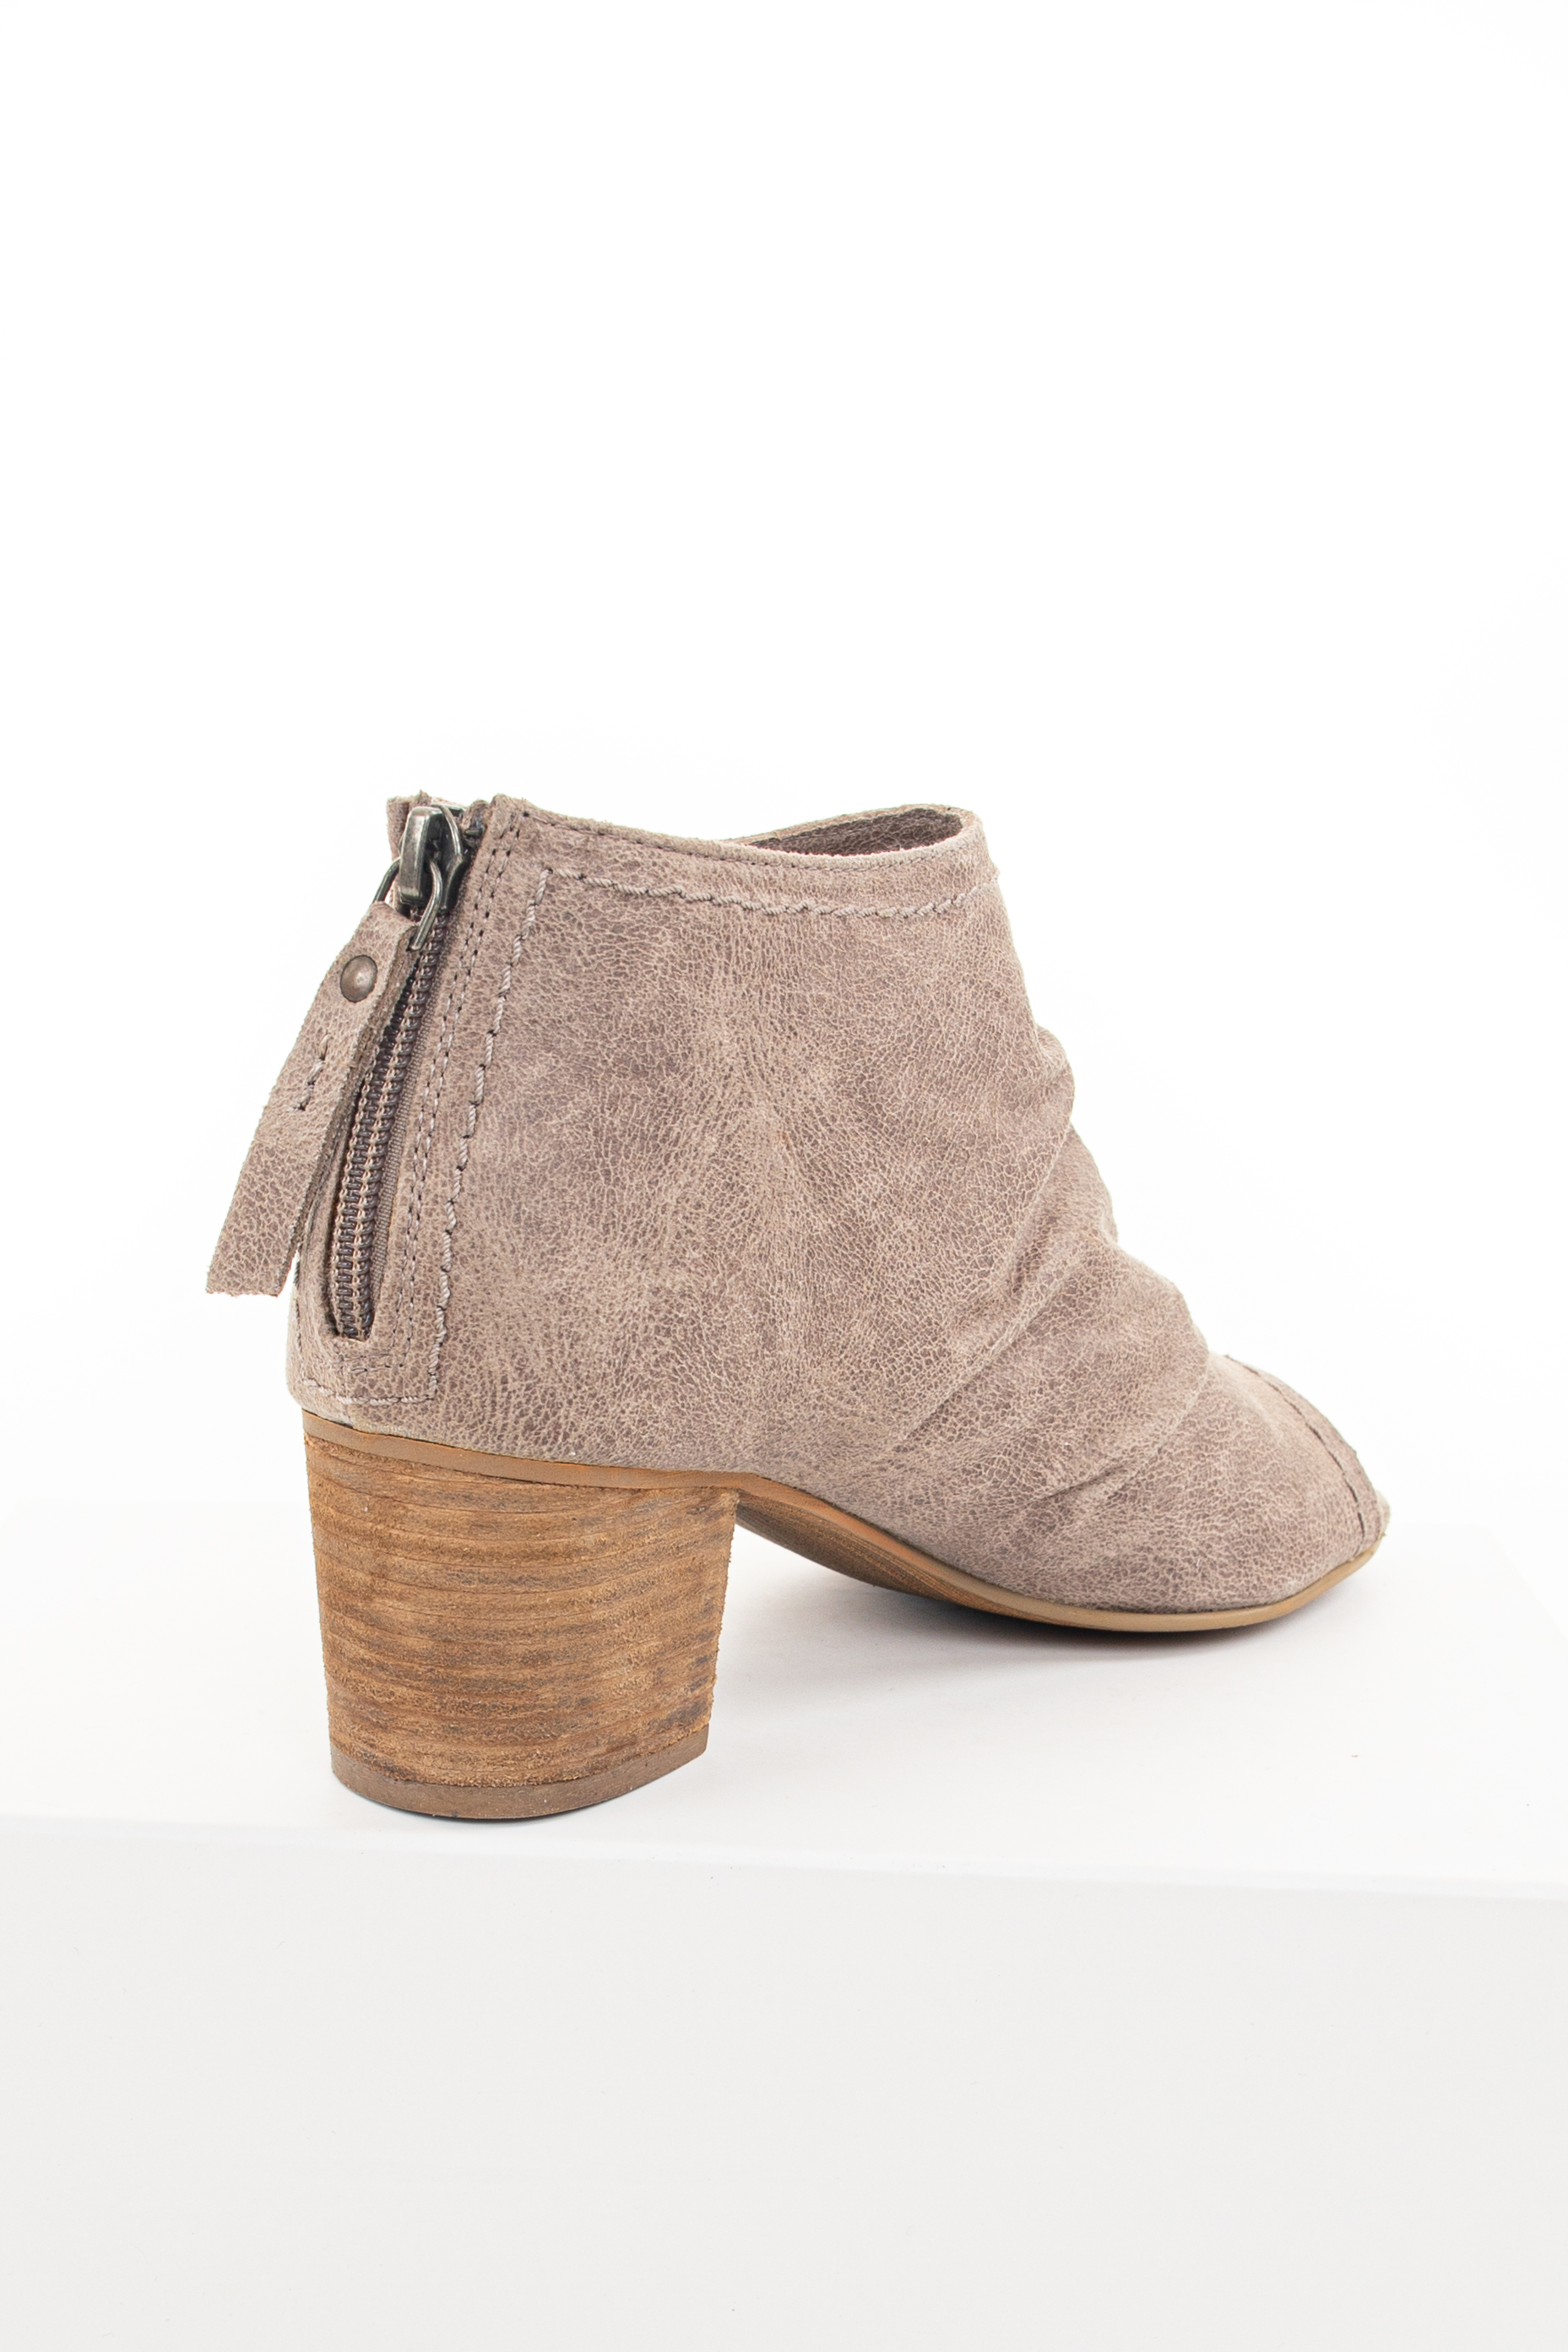 Taupe Open Toe Chunky Heel Booties with Side Cutout Detail